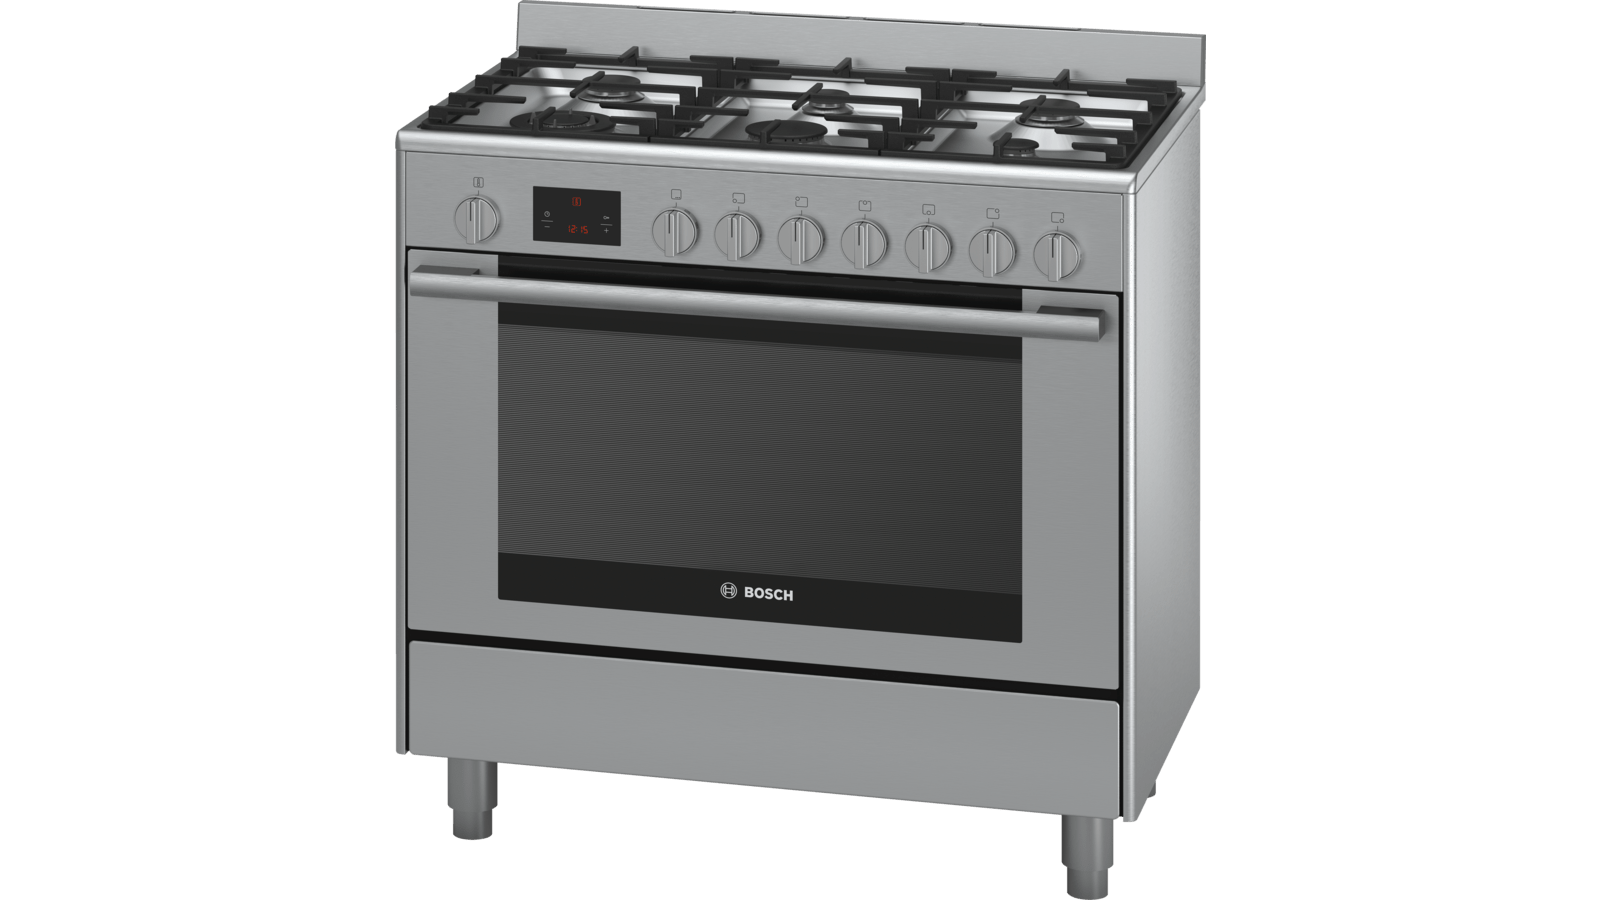 Exclusive Range Cooker Collections In Sydney